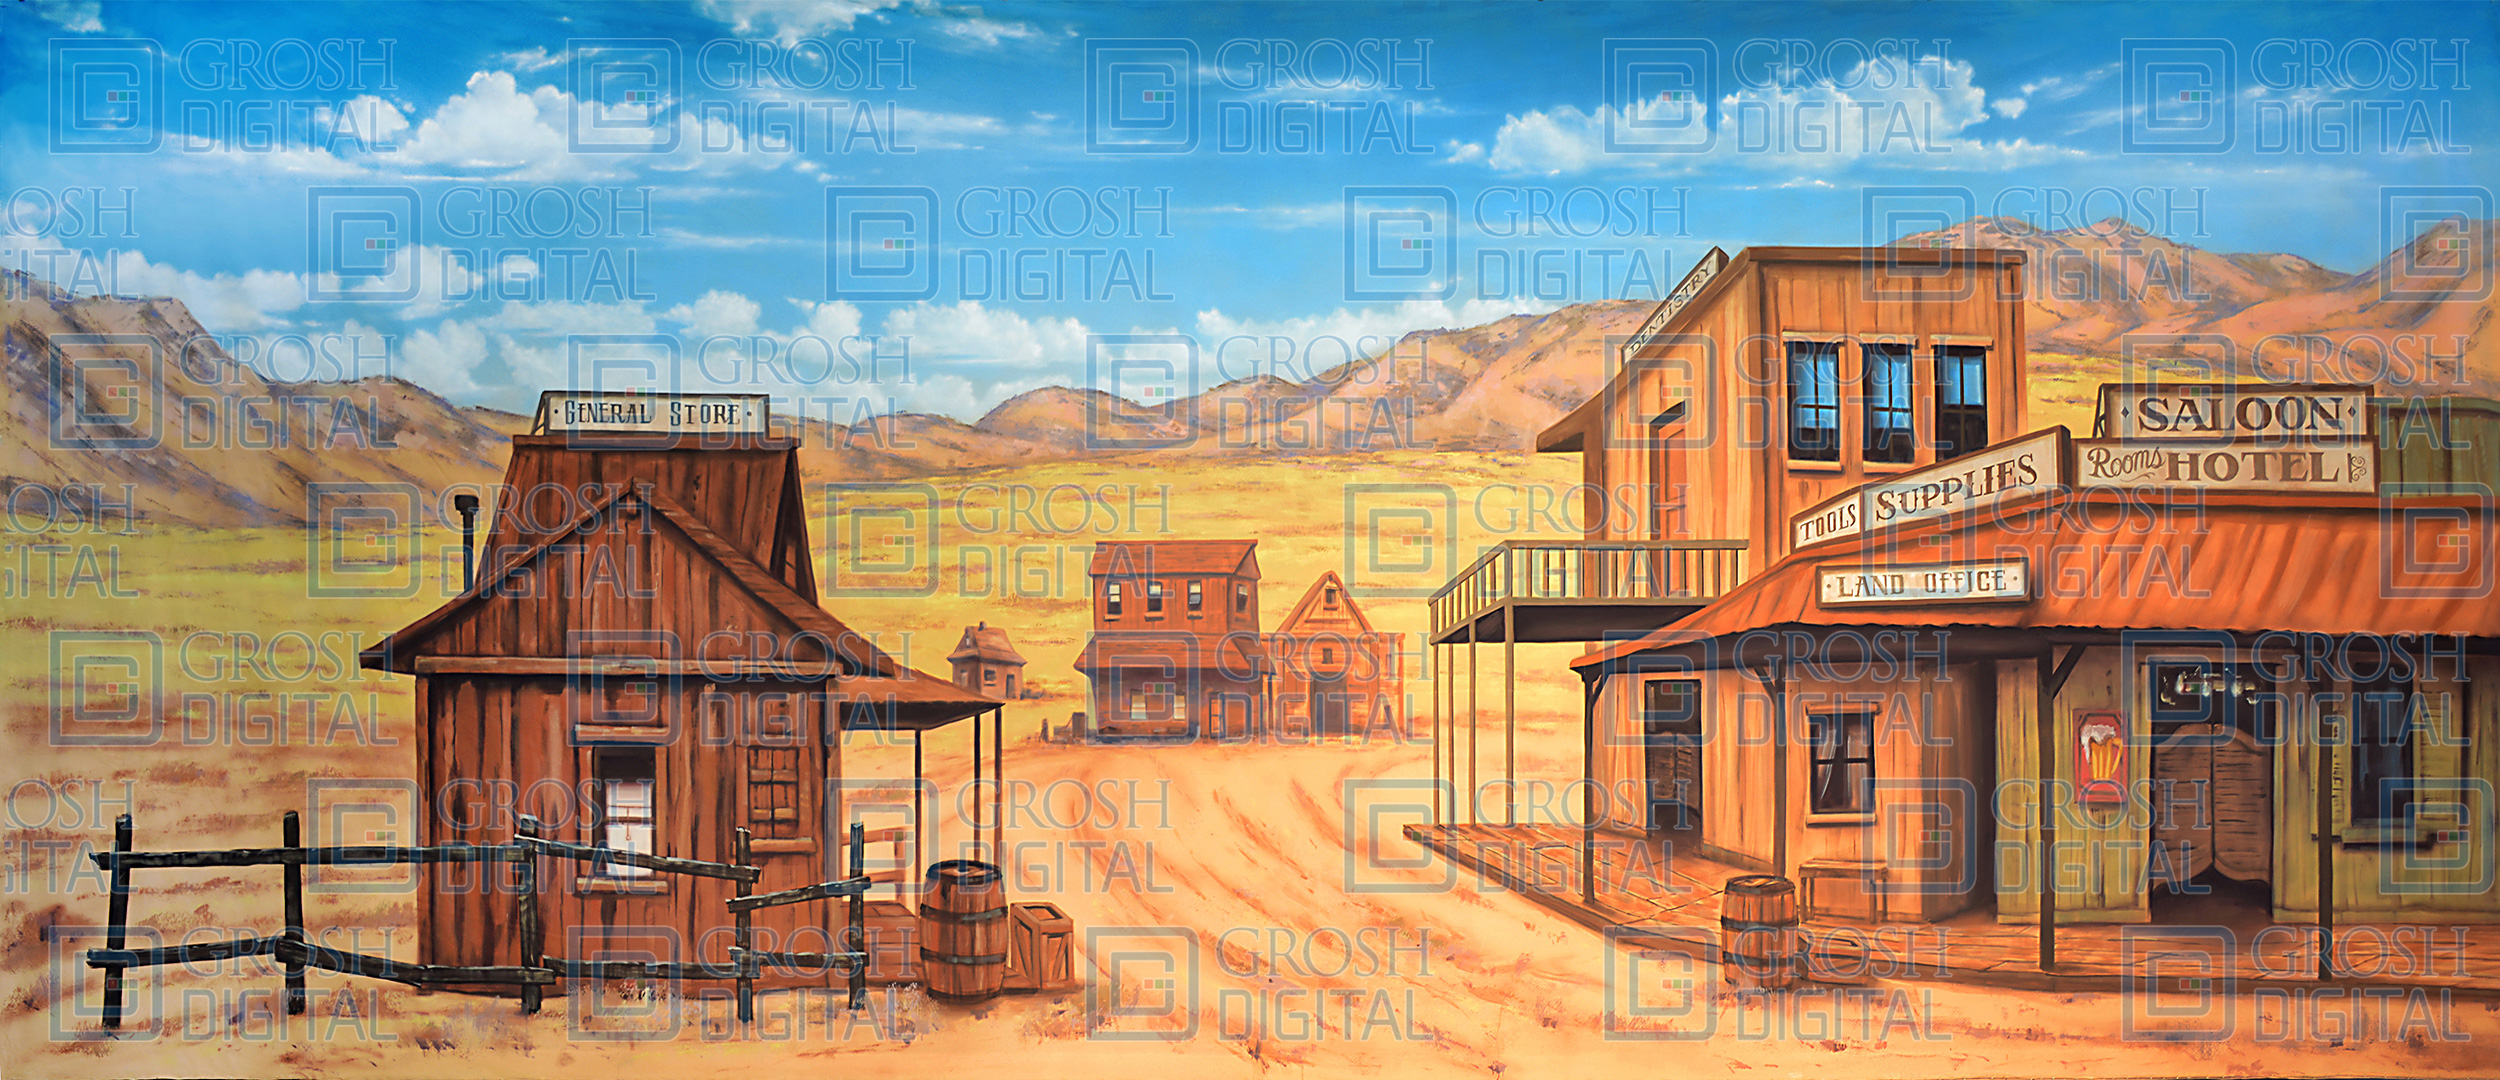 Western Street Projected Backdrop for Annie Get Your Gun, Crazy for You, Exteriors, Seven Brides for Seven Brothers, Towns